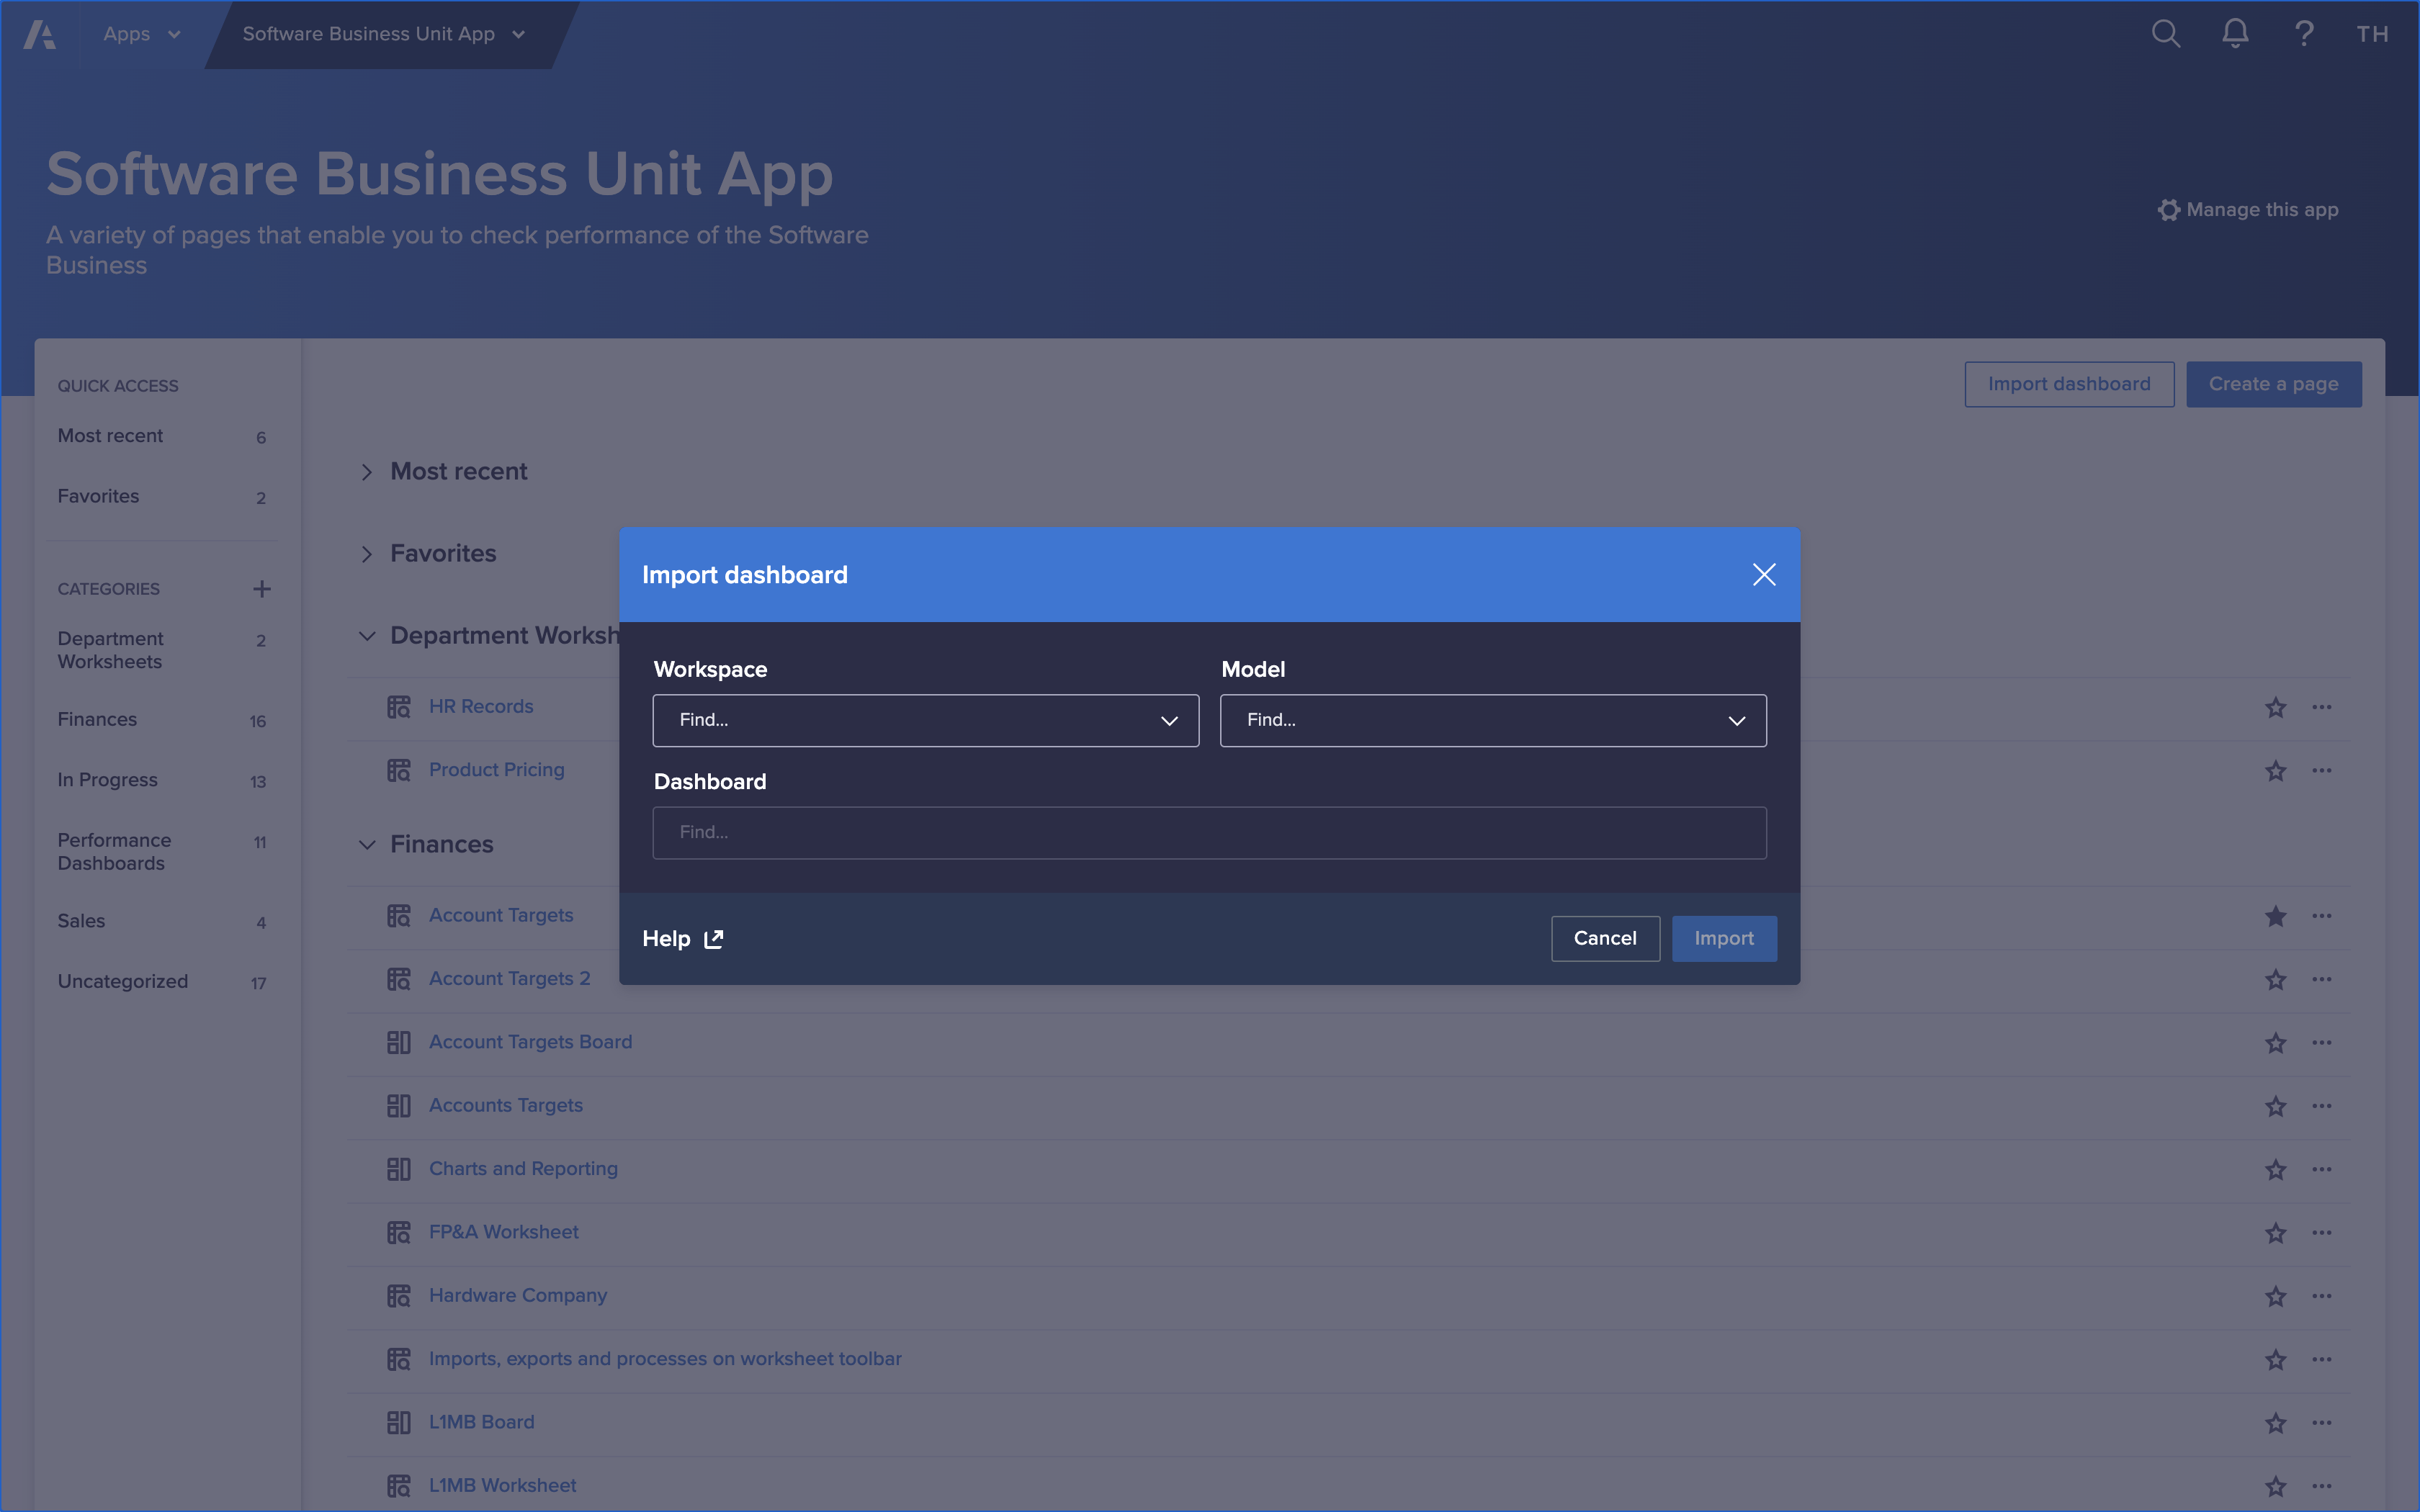 The app contents screen for an app titled Software Business Unit App is open. The Import dashboard button in the top-right was clicked, so the Import dashboard dialog displays.